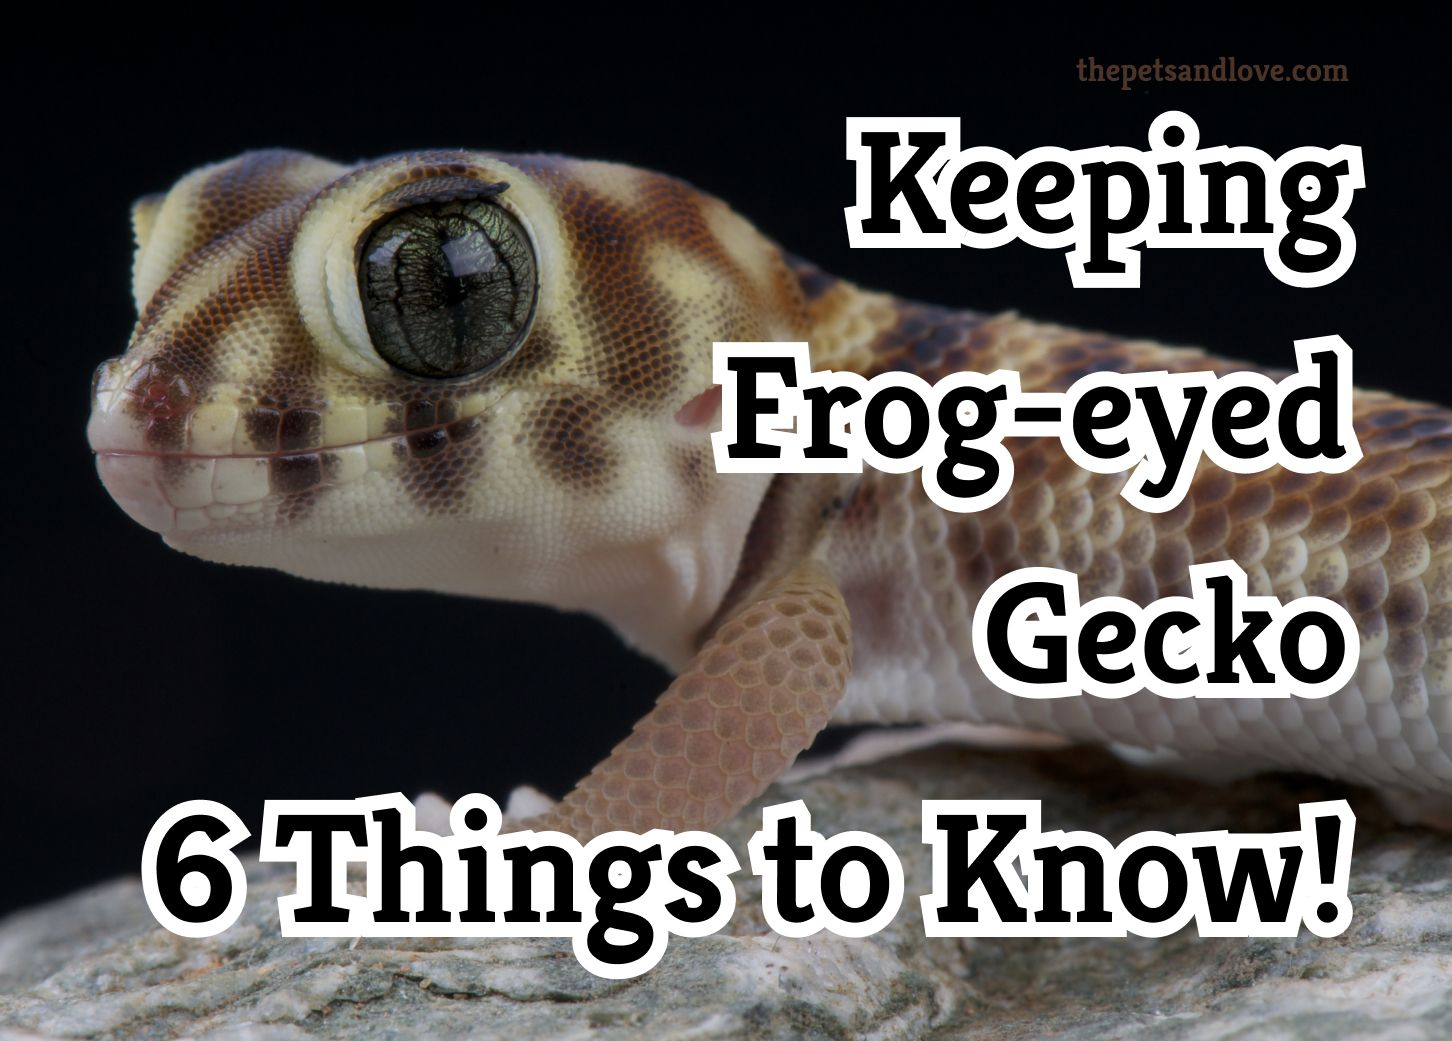 Keeping frog eyed gecko? 6 Things to know!